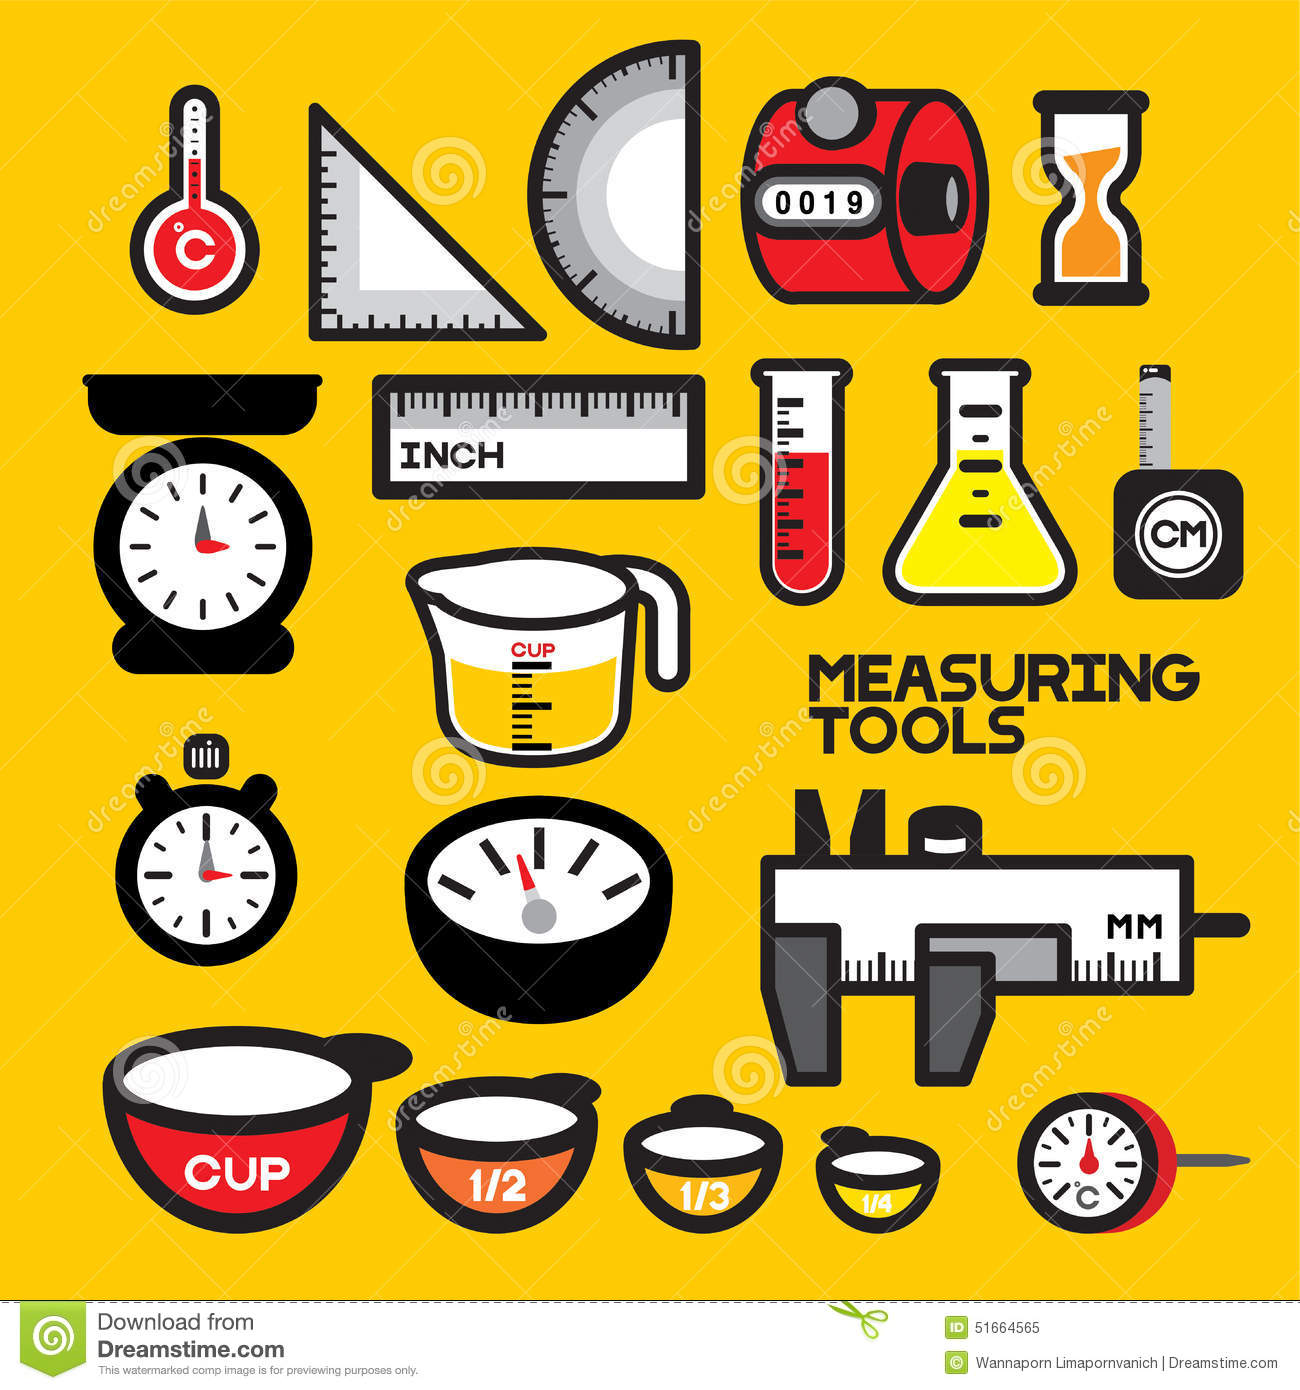 Cooking measurement clipart.